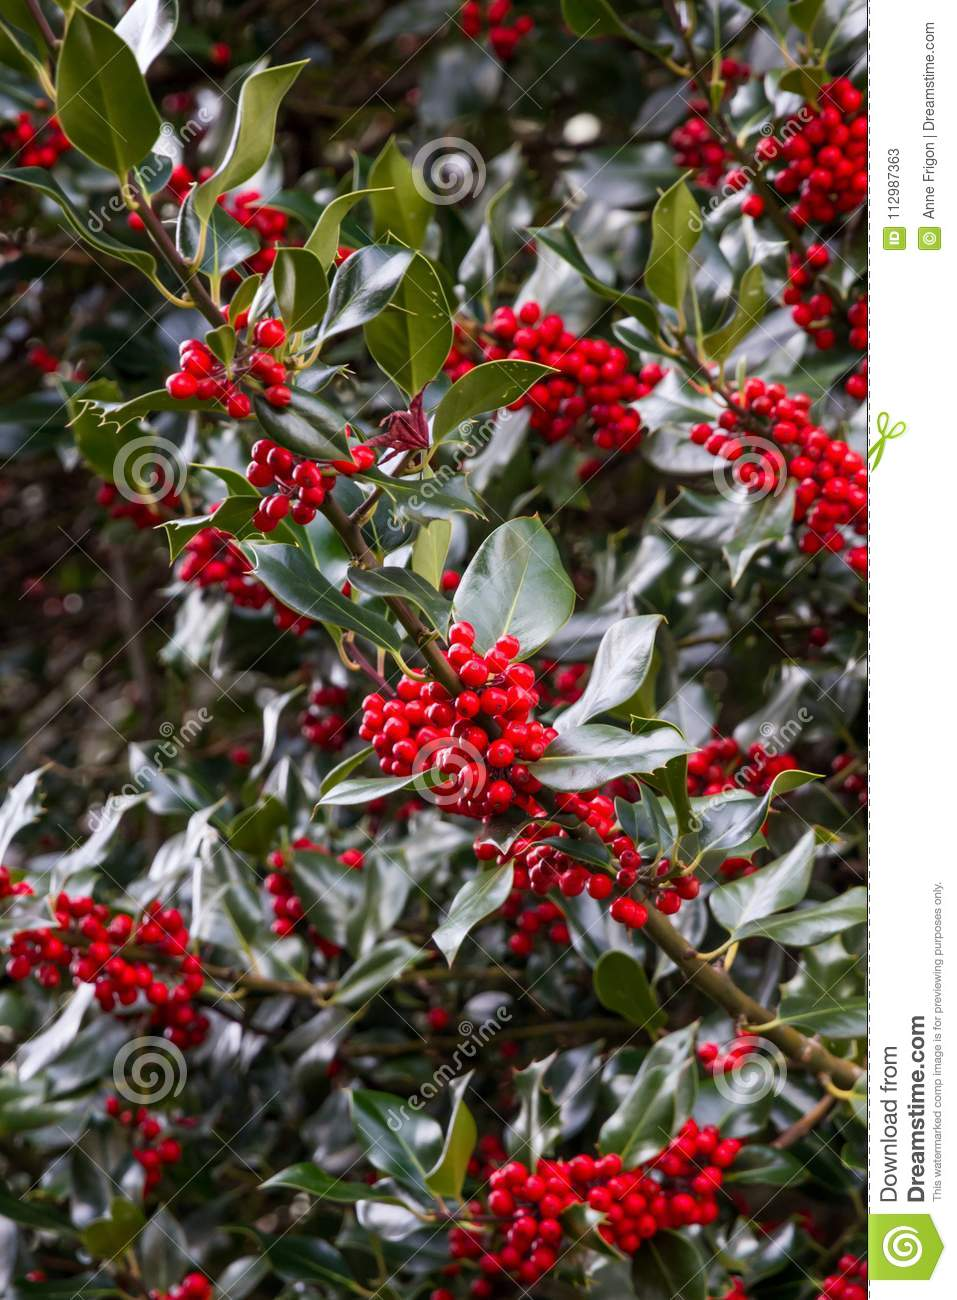 Bright red berries clustered against dark green evergreen leaves